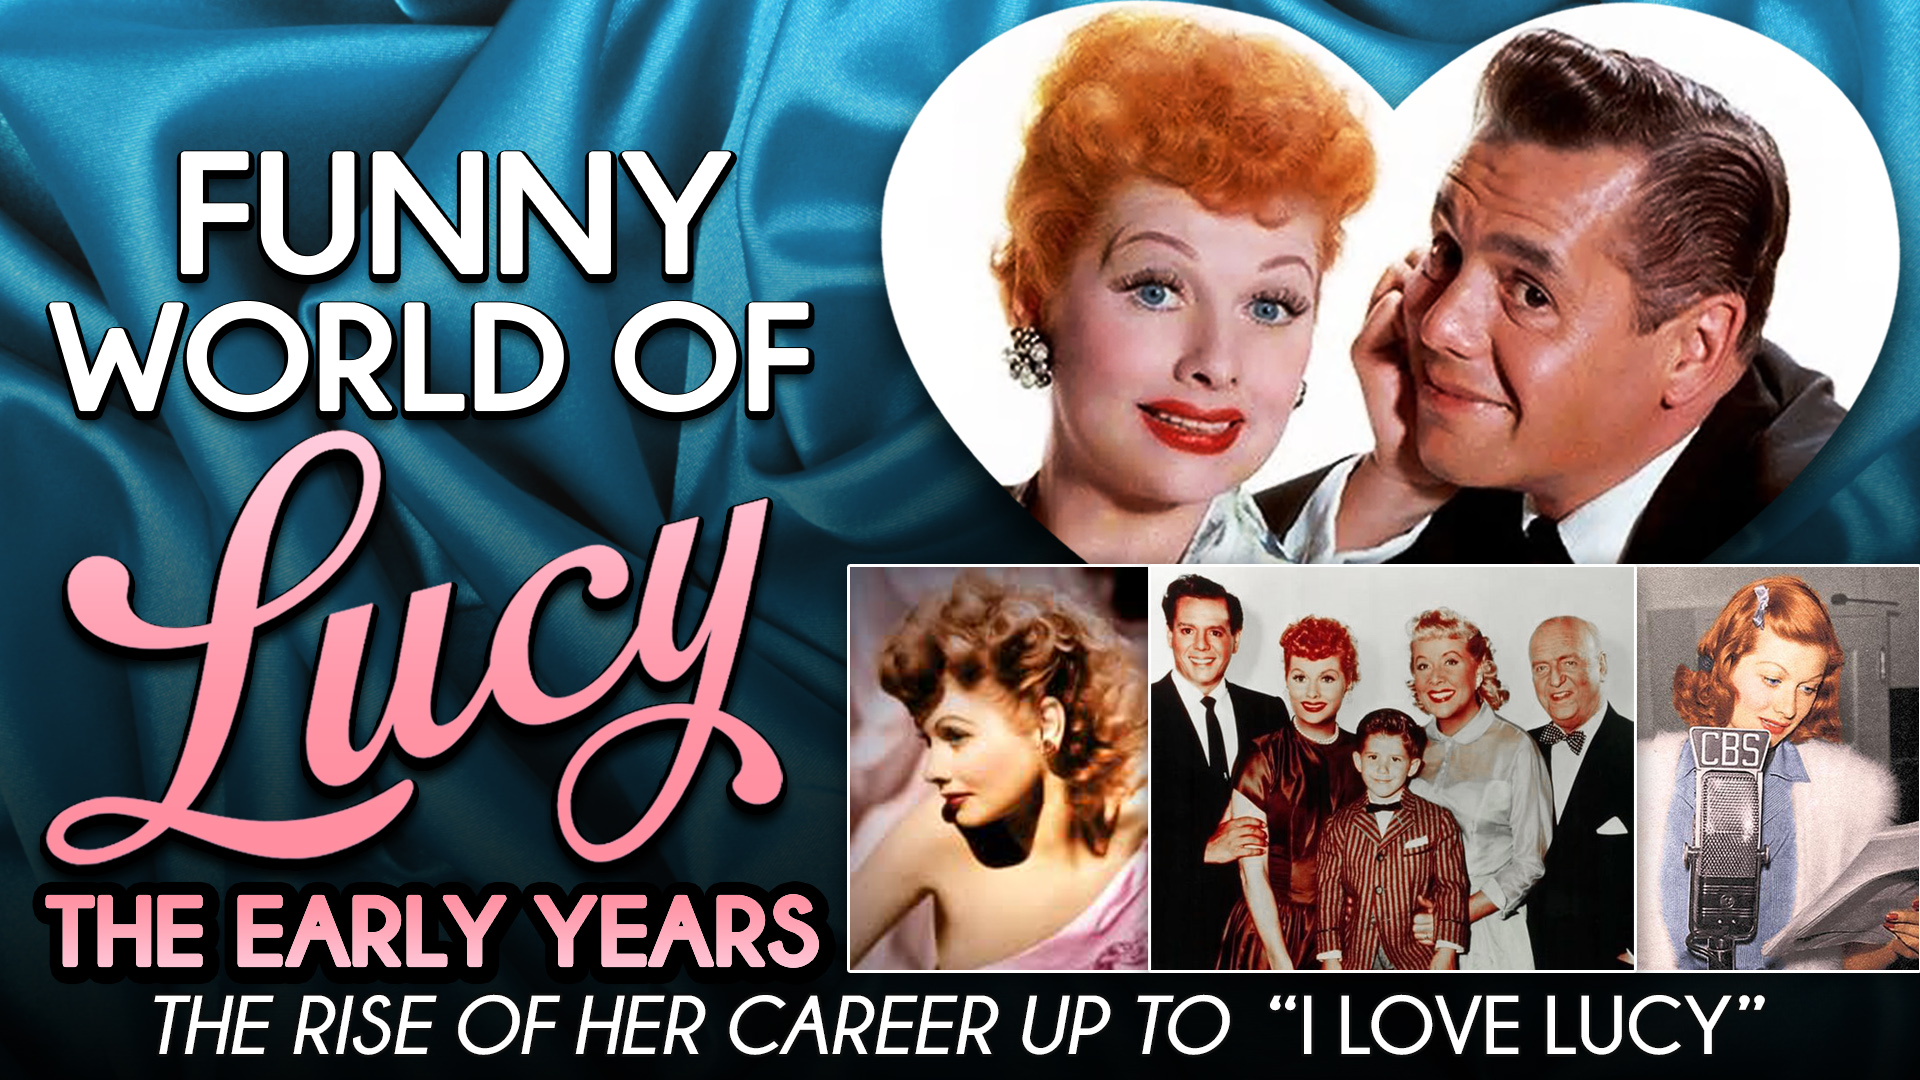 """Funny World of Lucy, The Early Years - The Rise of Her Career Up To """"I Love Lucy"""""""